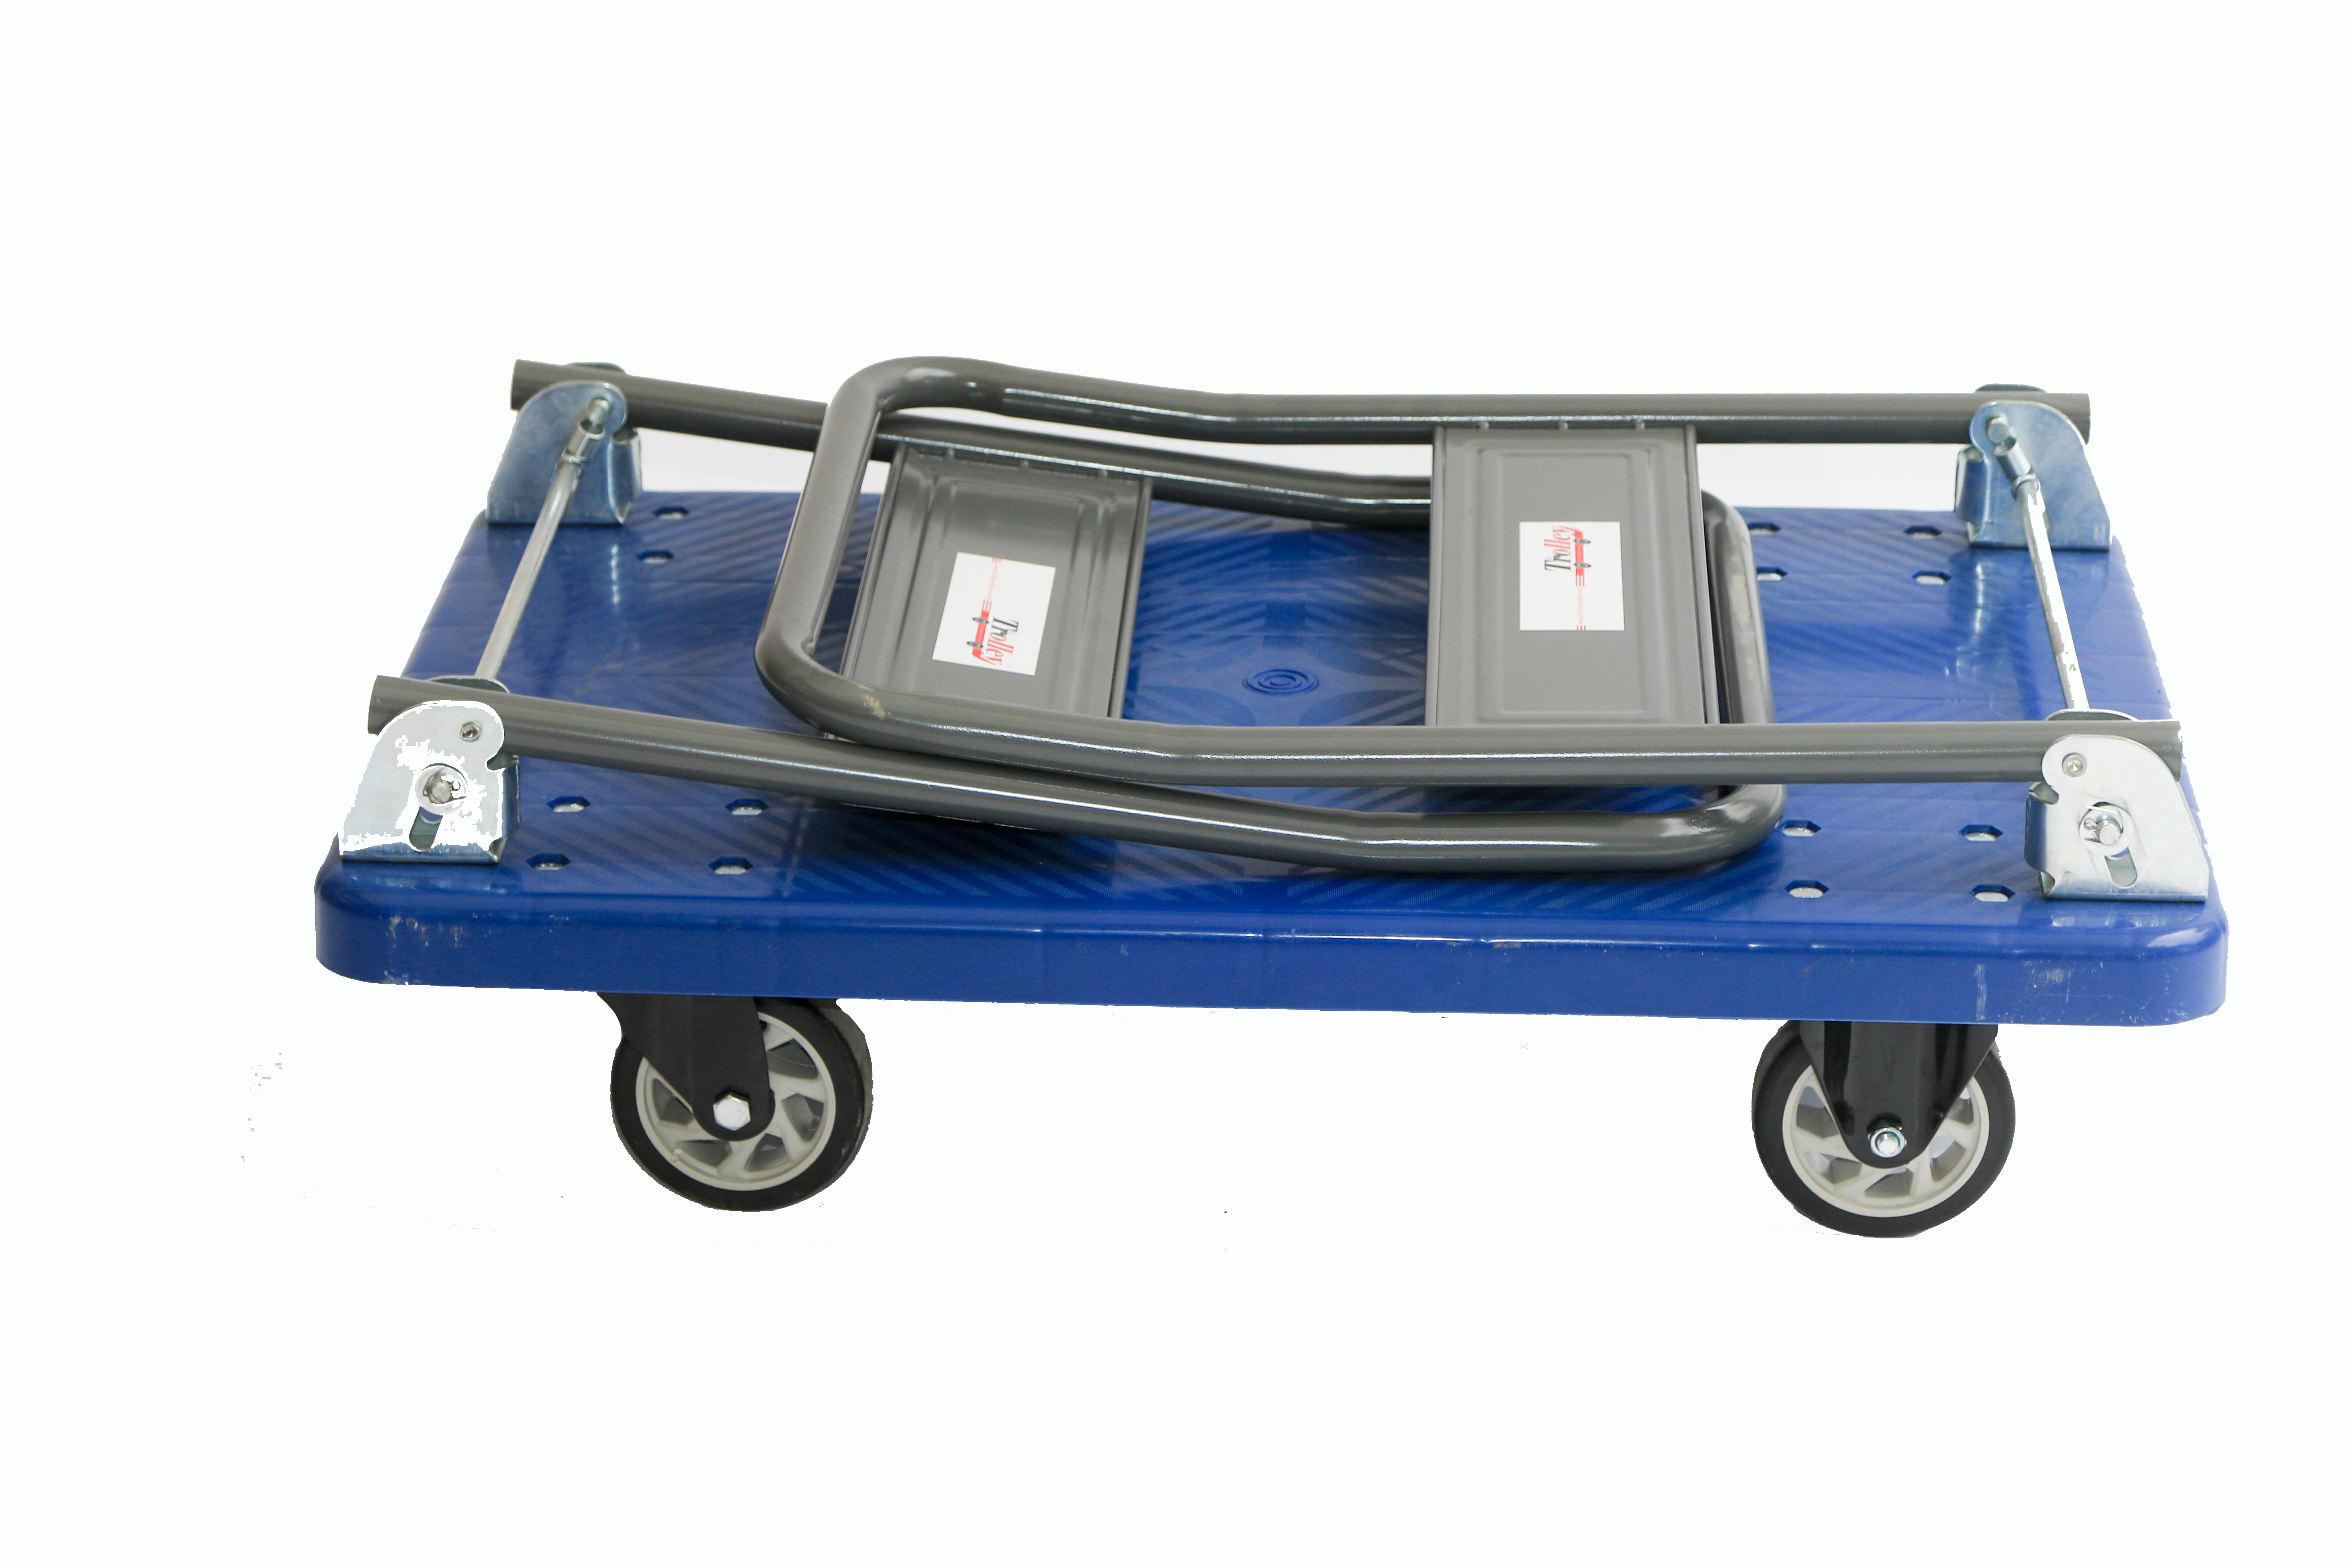 The flatbed trolley with foldable handles